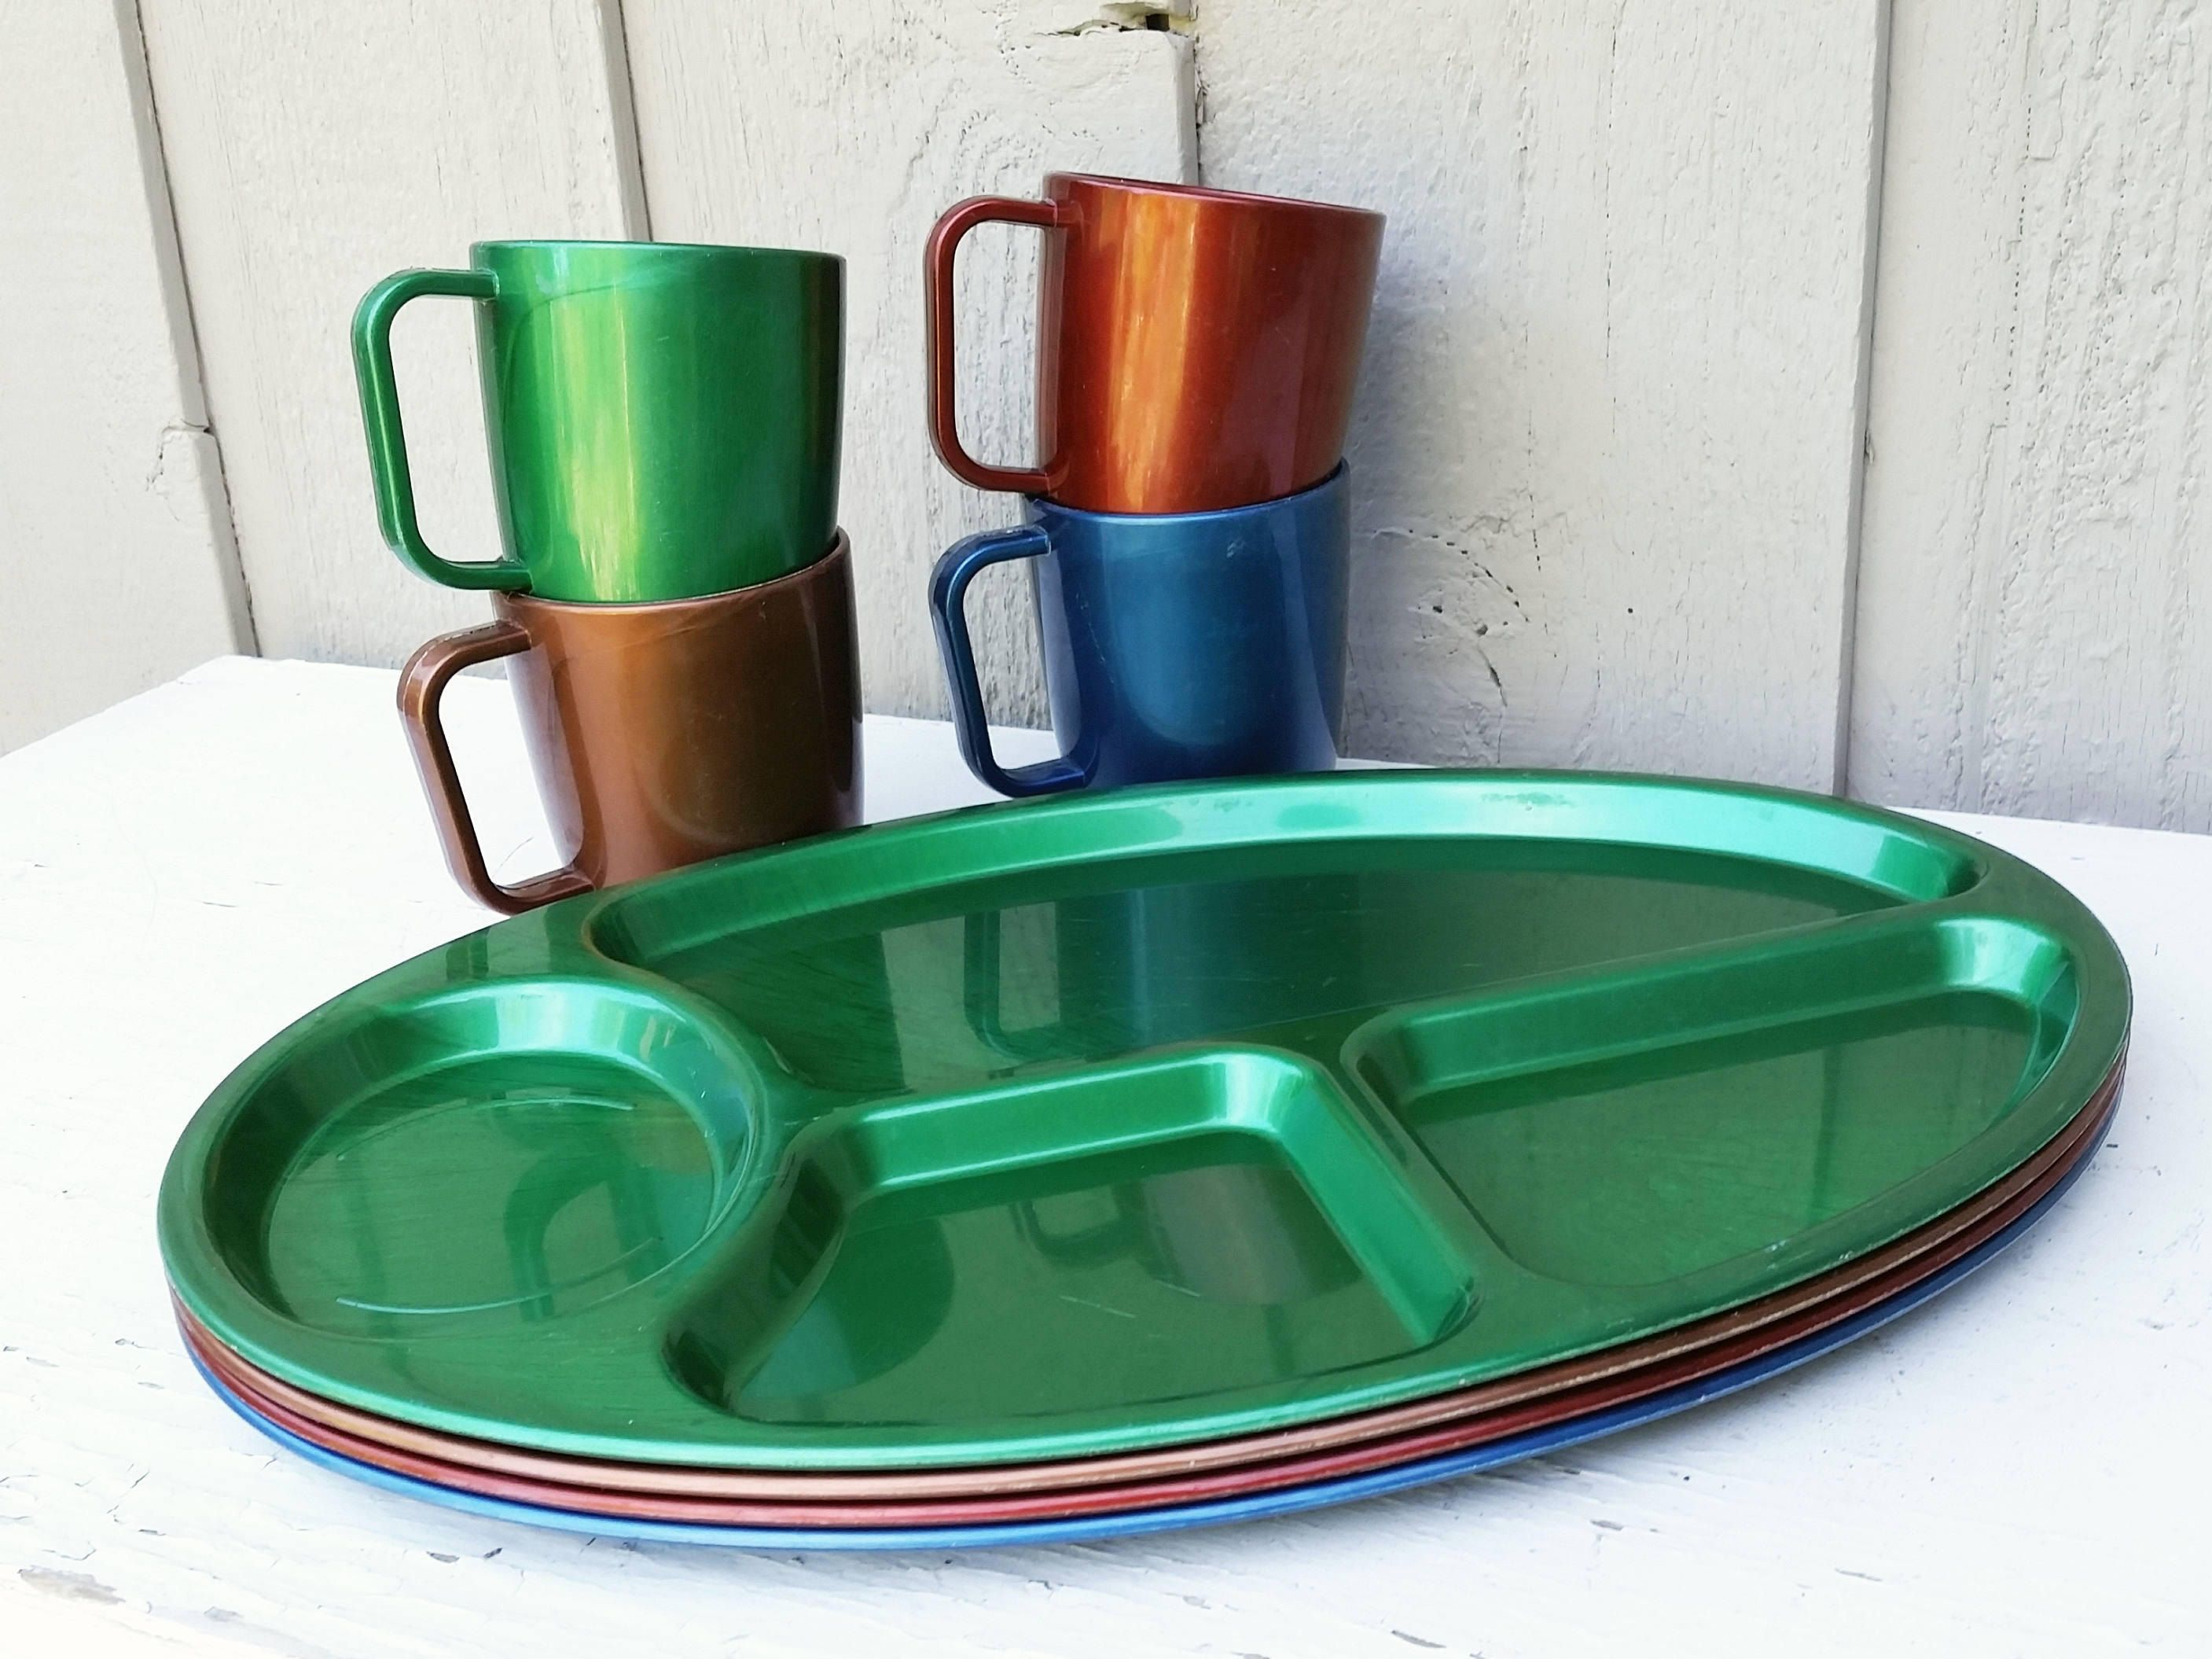 Vintage BW Melamine Divided Plates u0026 Cups. A heavy plastic set perfect for C&ing or Picnics. Available at #naturegirl22.etsy.com & B W Melamine Divided Plate u0026 Cup Set Vintage Heavy Plastic Ware for ...